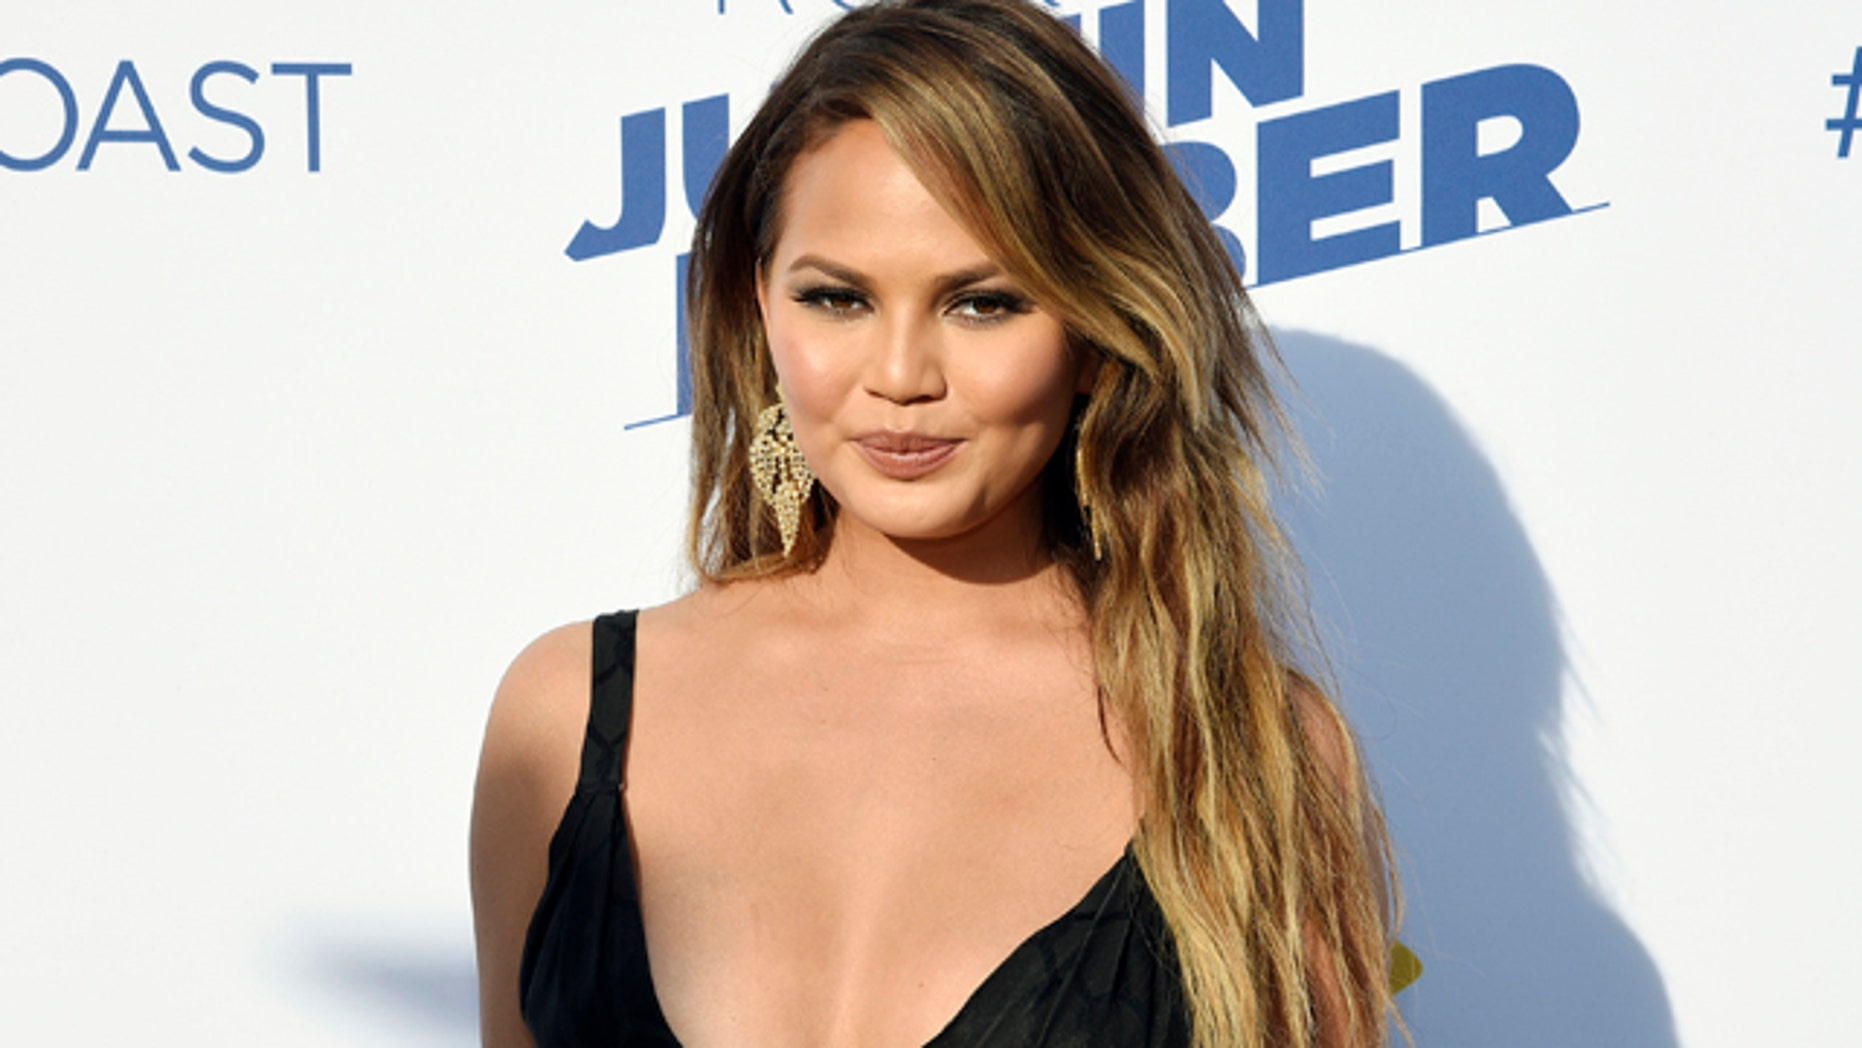 March 14, 2015. Model Chrissy Teigen poses during theComedy Central Roast of Justin Bieber at Sony Studios in Culver City, California.